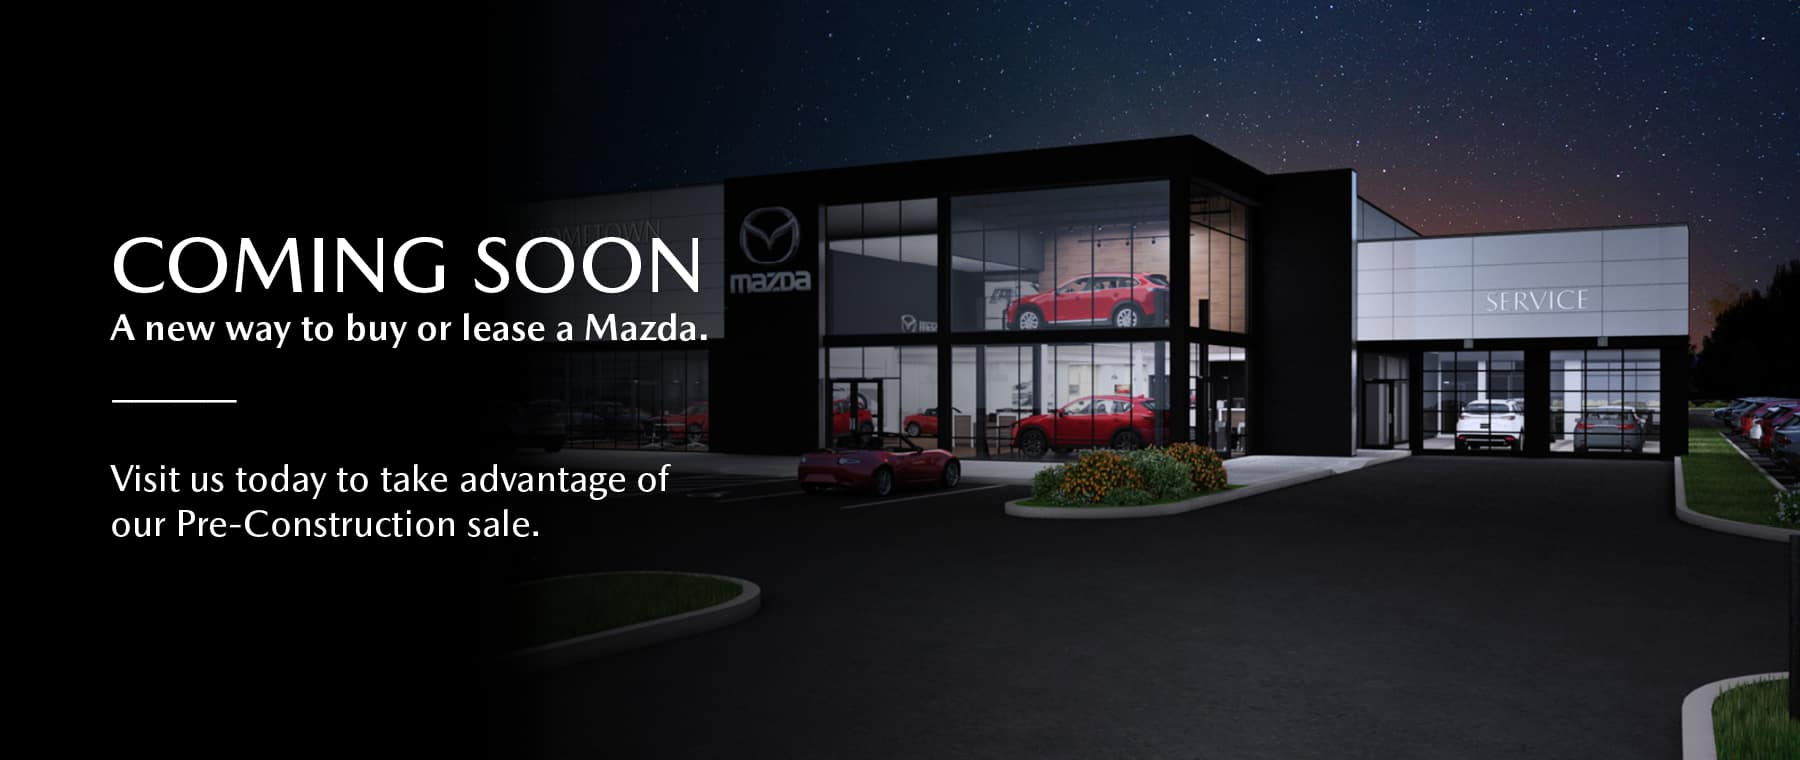 coming soon. A new way to buy or lease a Mazda. Visit us today to take advantage of our Pre-Construction sale.